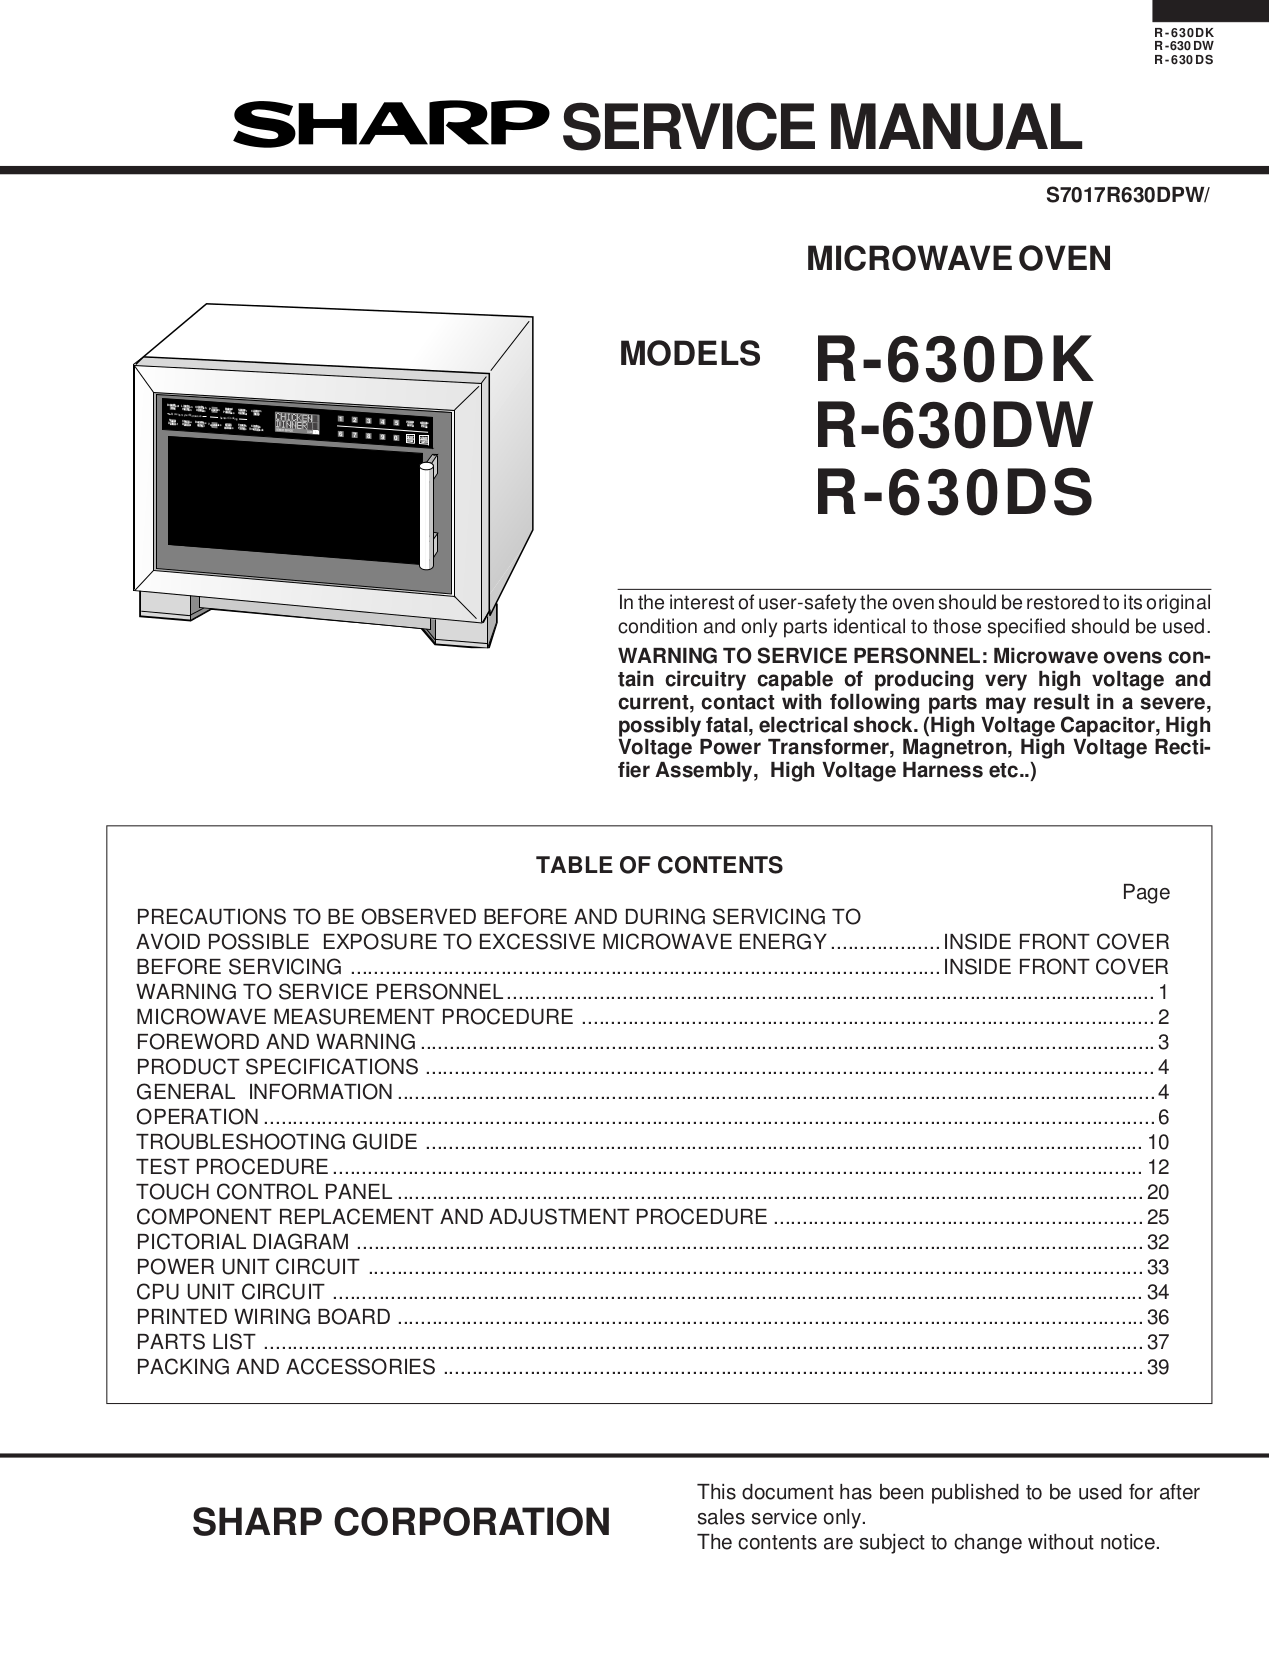 Download Free Pdf For Sharp R 630ds Microwave Manual Control Panel Circuit Diagram And Parts List Microwaveparts